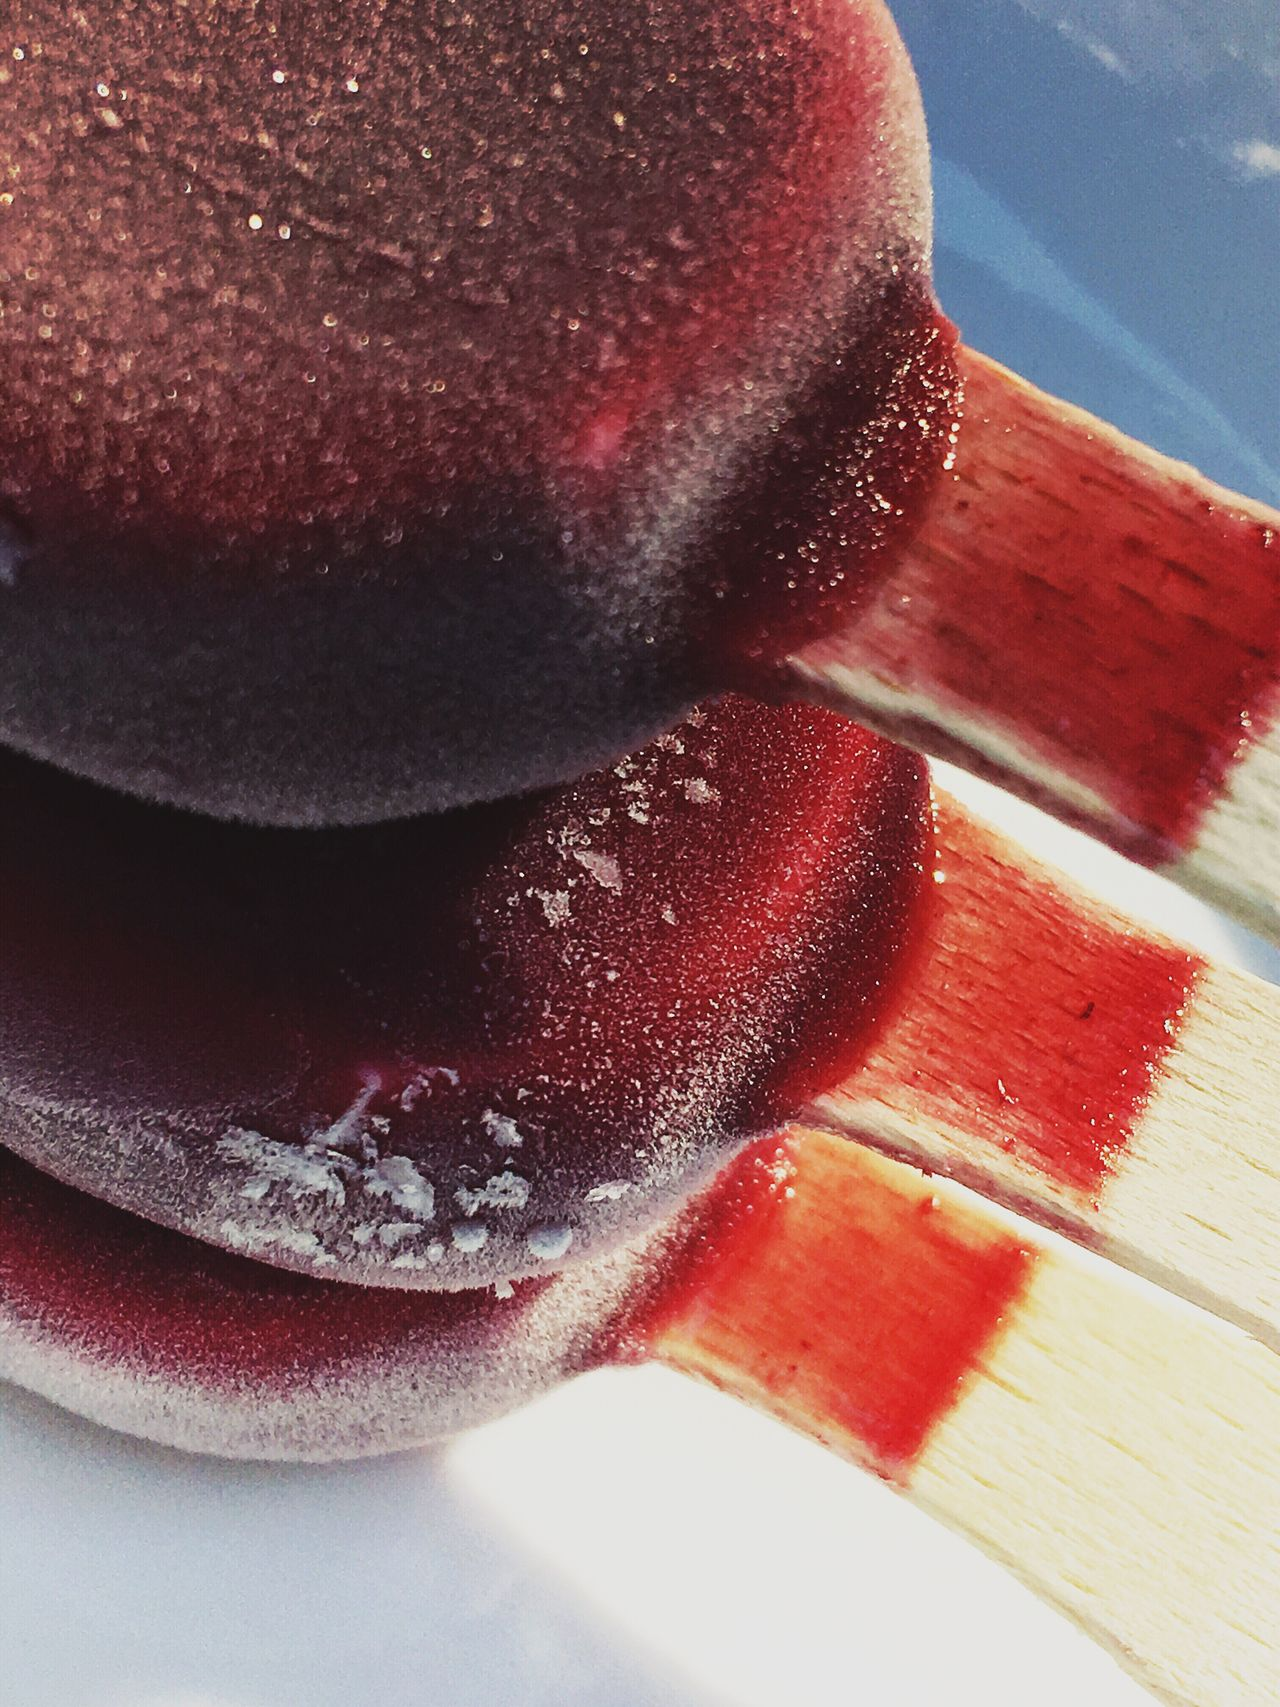 Three Popsicles Food And Drink Indoors  Sweet Food Food Frozen Food Flavored Ice Red Close-up Cold Temperature Table No People Dessert Day Refreshment Freshness Ready-to-eat Vertical Photography Color Image